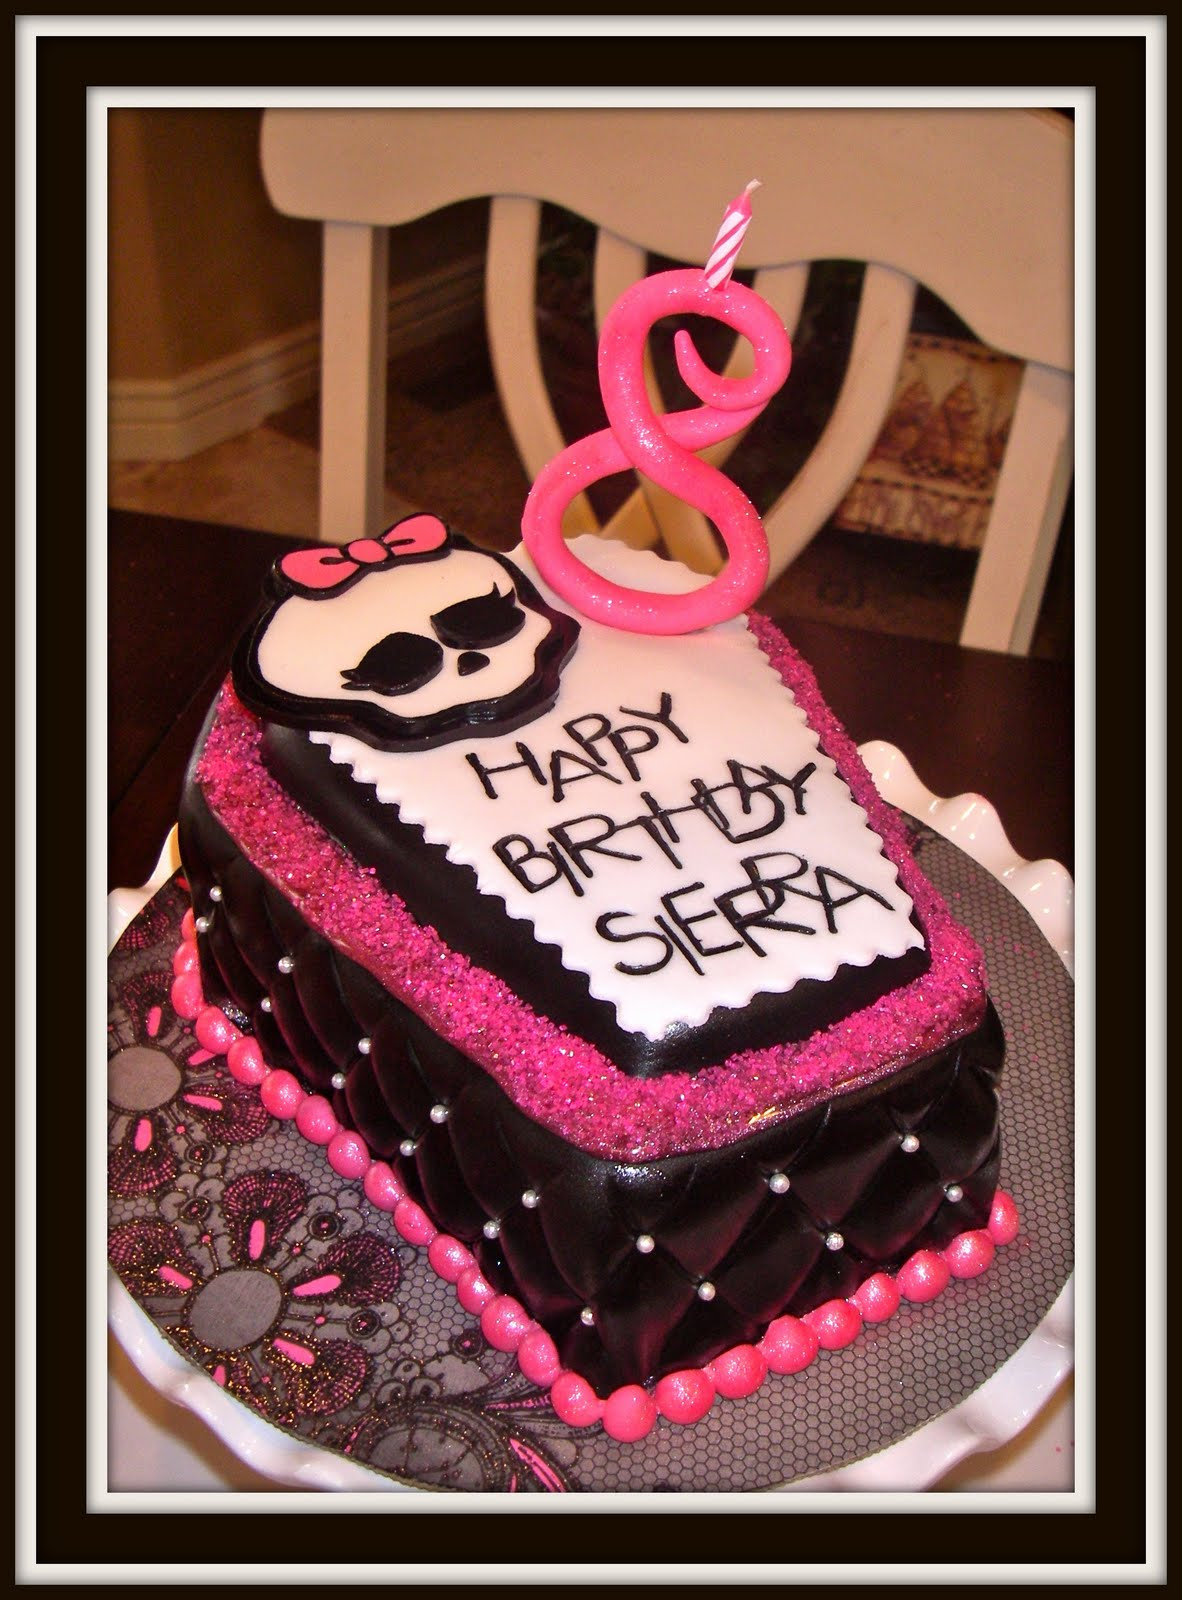 Cool 51 Images About Cake On We Heart It See More About Cake Funny Birthday Cards Online Barepcheapnameinfo